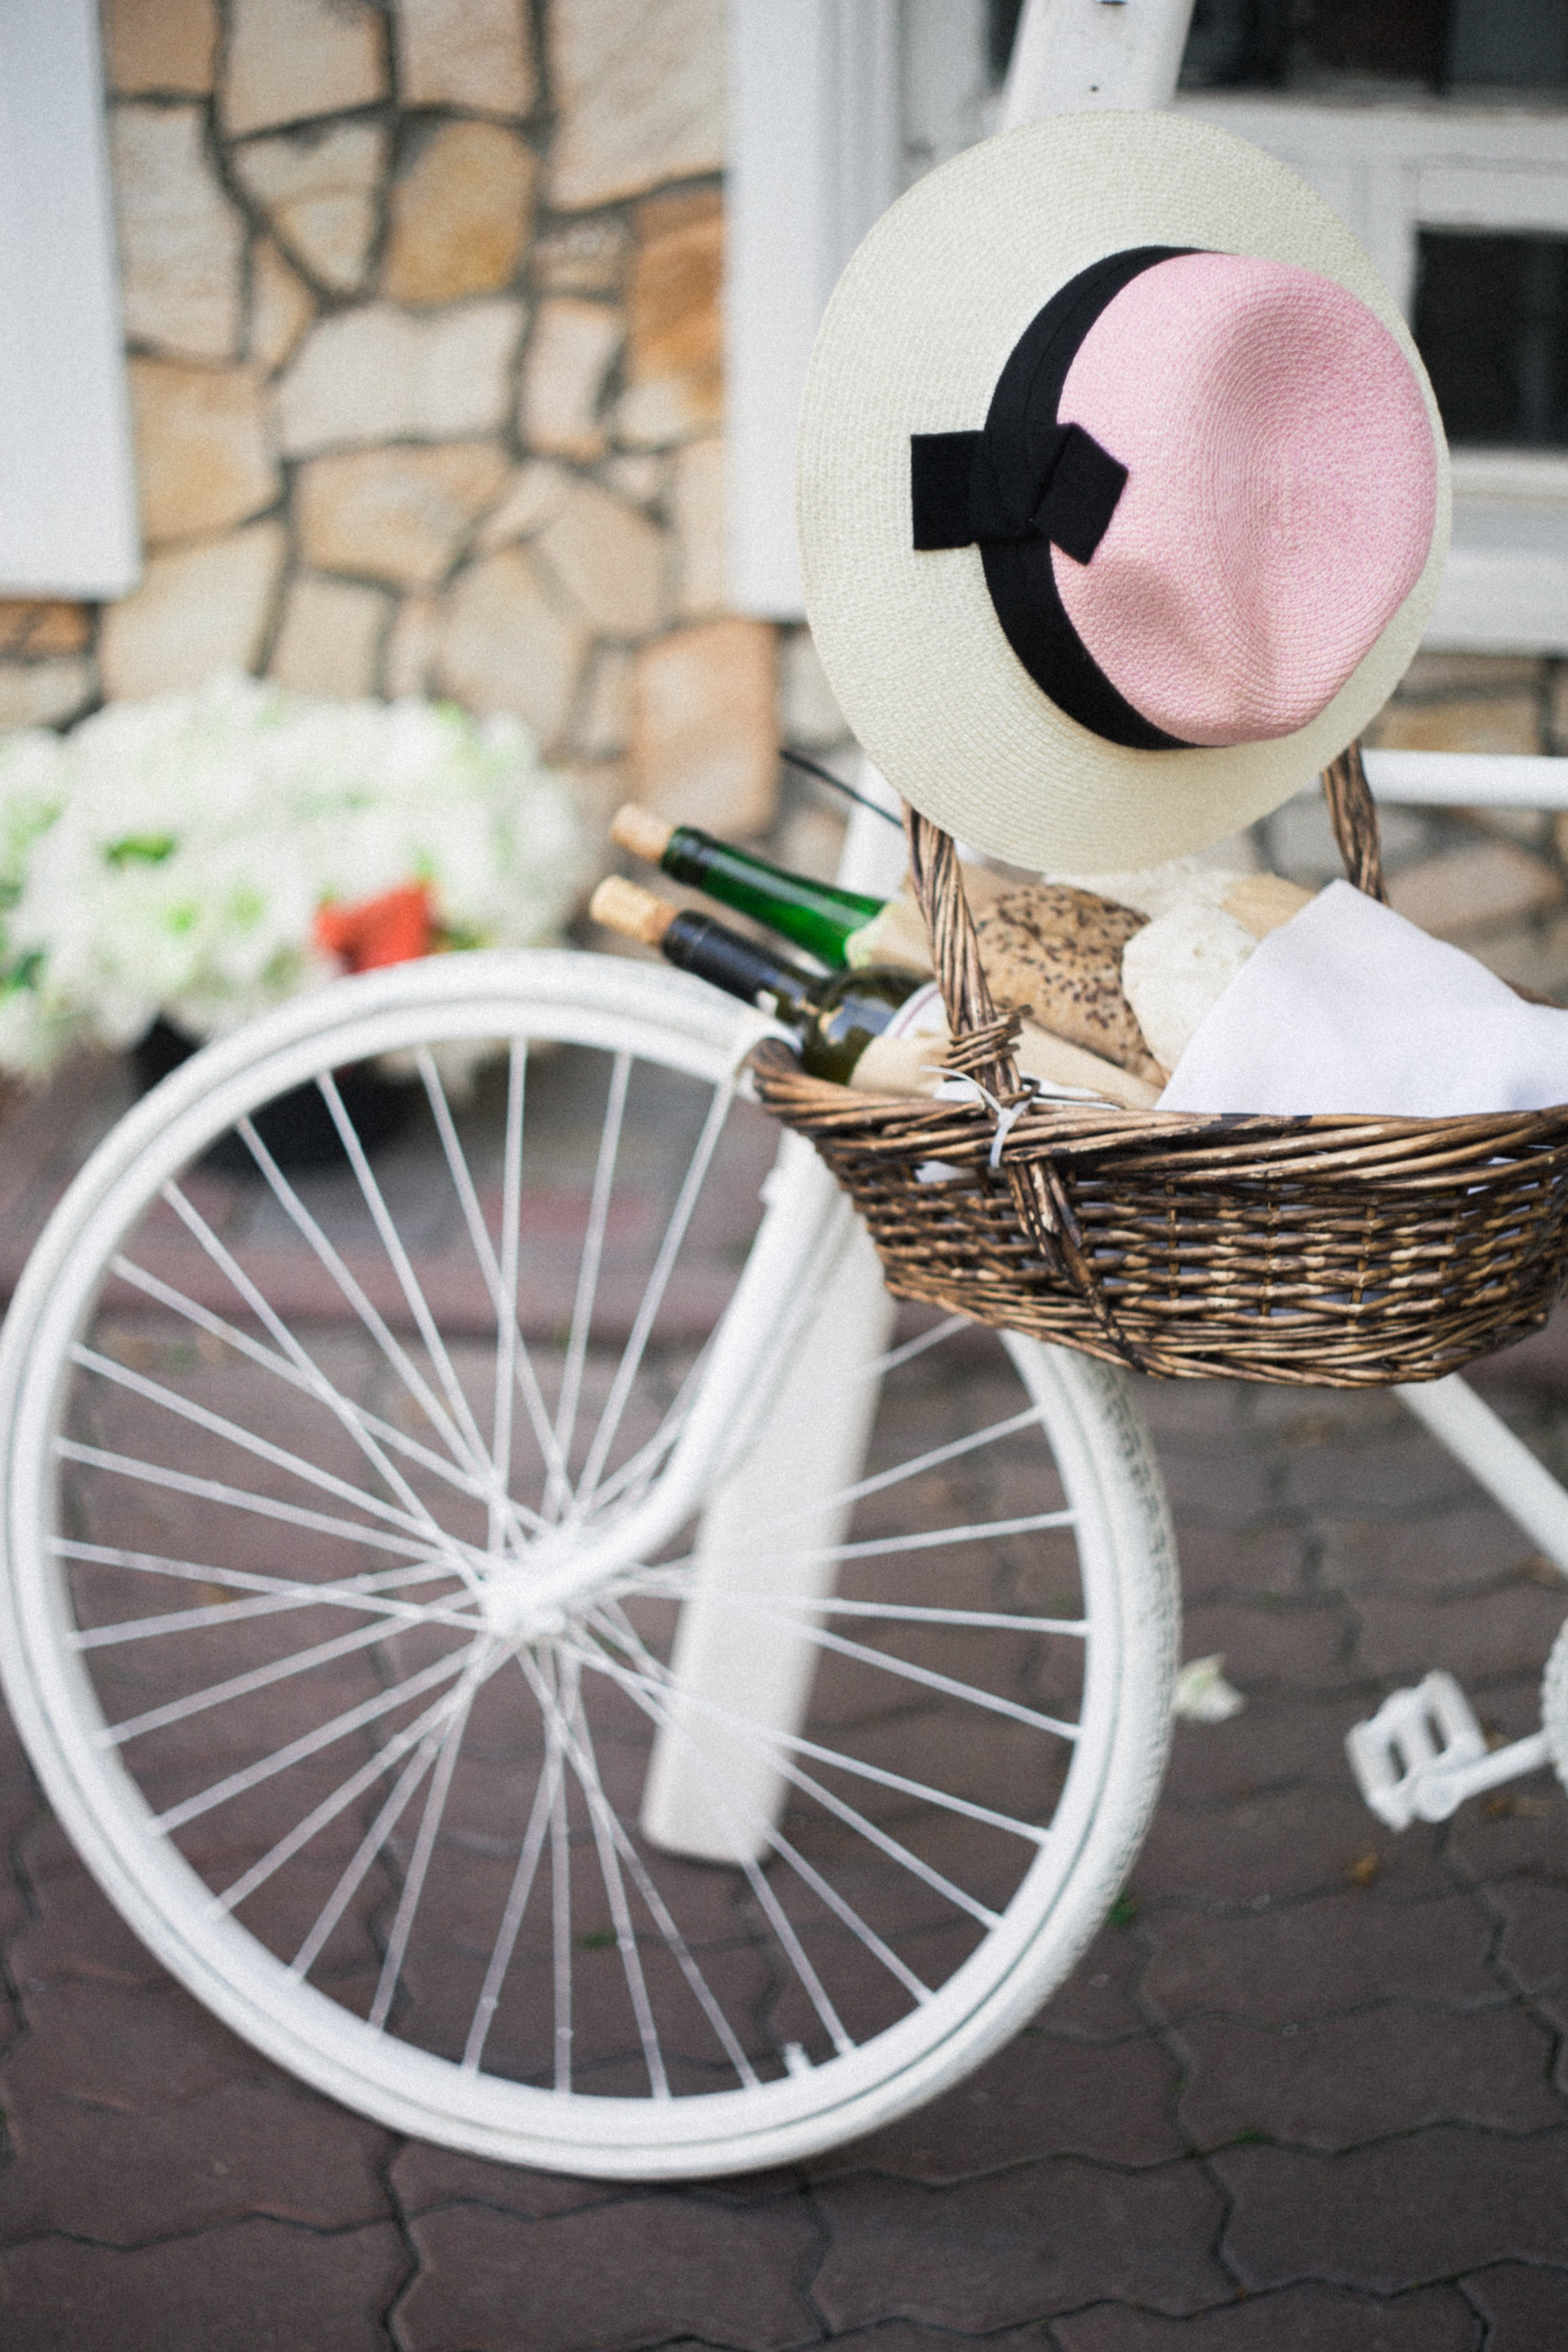 brown wicker basket with white, pink, and black sunhat besides white bike